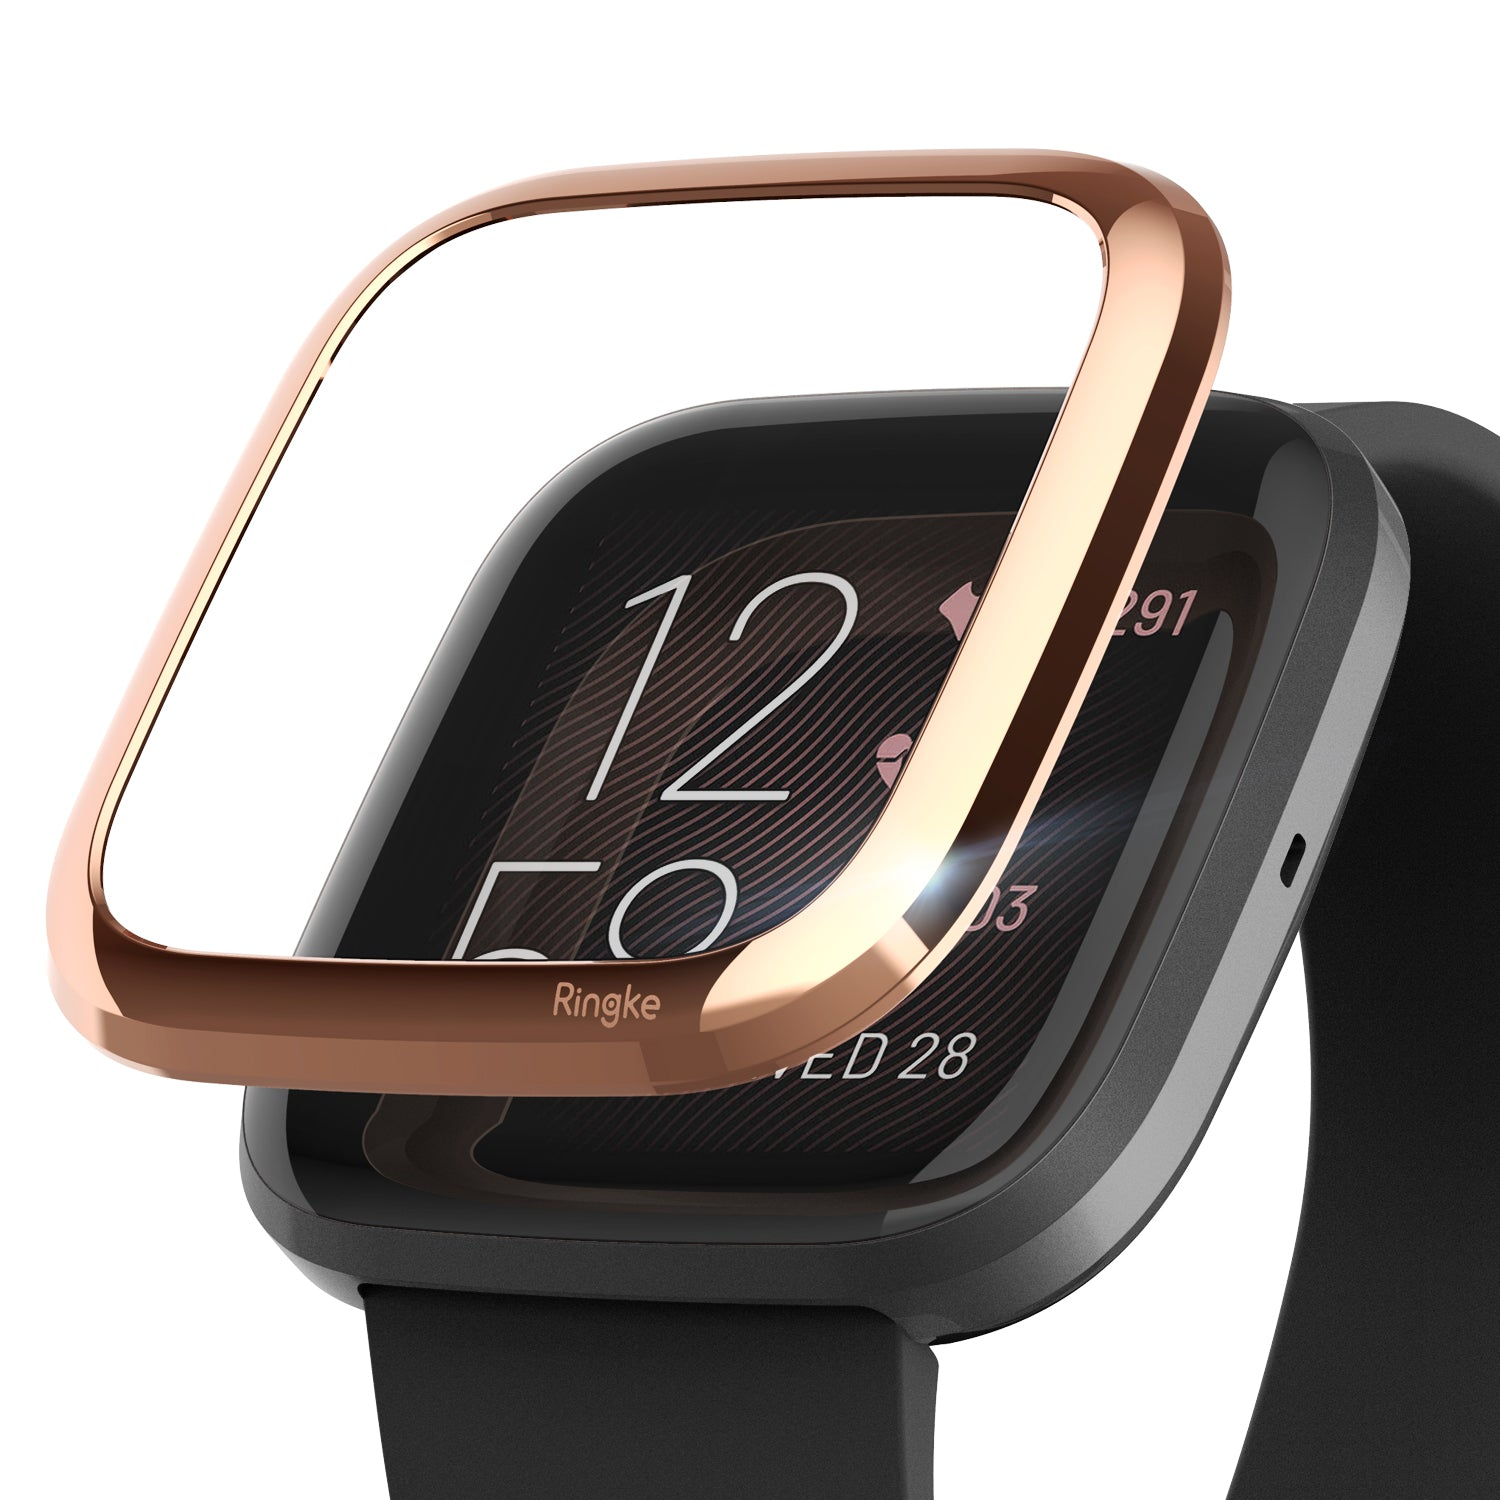 Ringke Bezel Styling Fitbit Versa 2, Full Stainless Steel Frame, Rose Gold, Stainless Steel, 2-02 ST